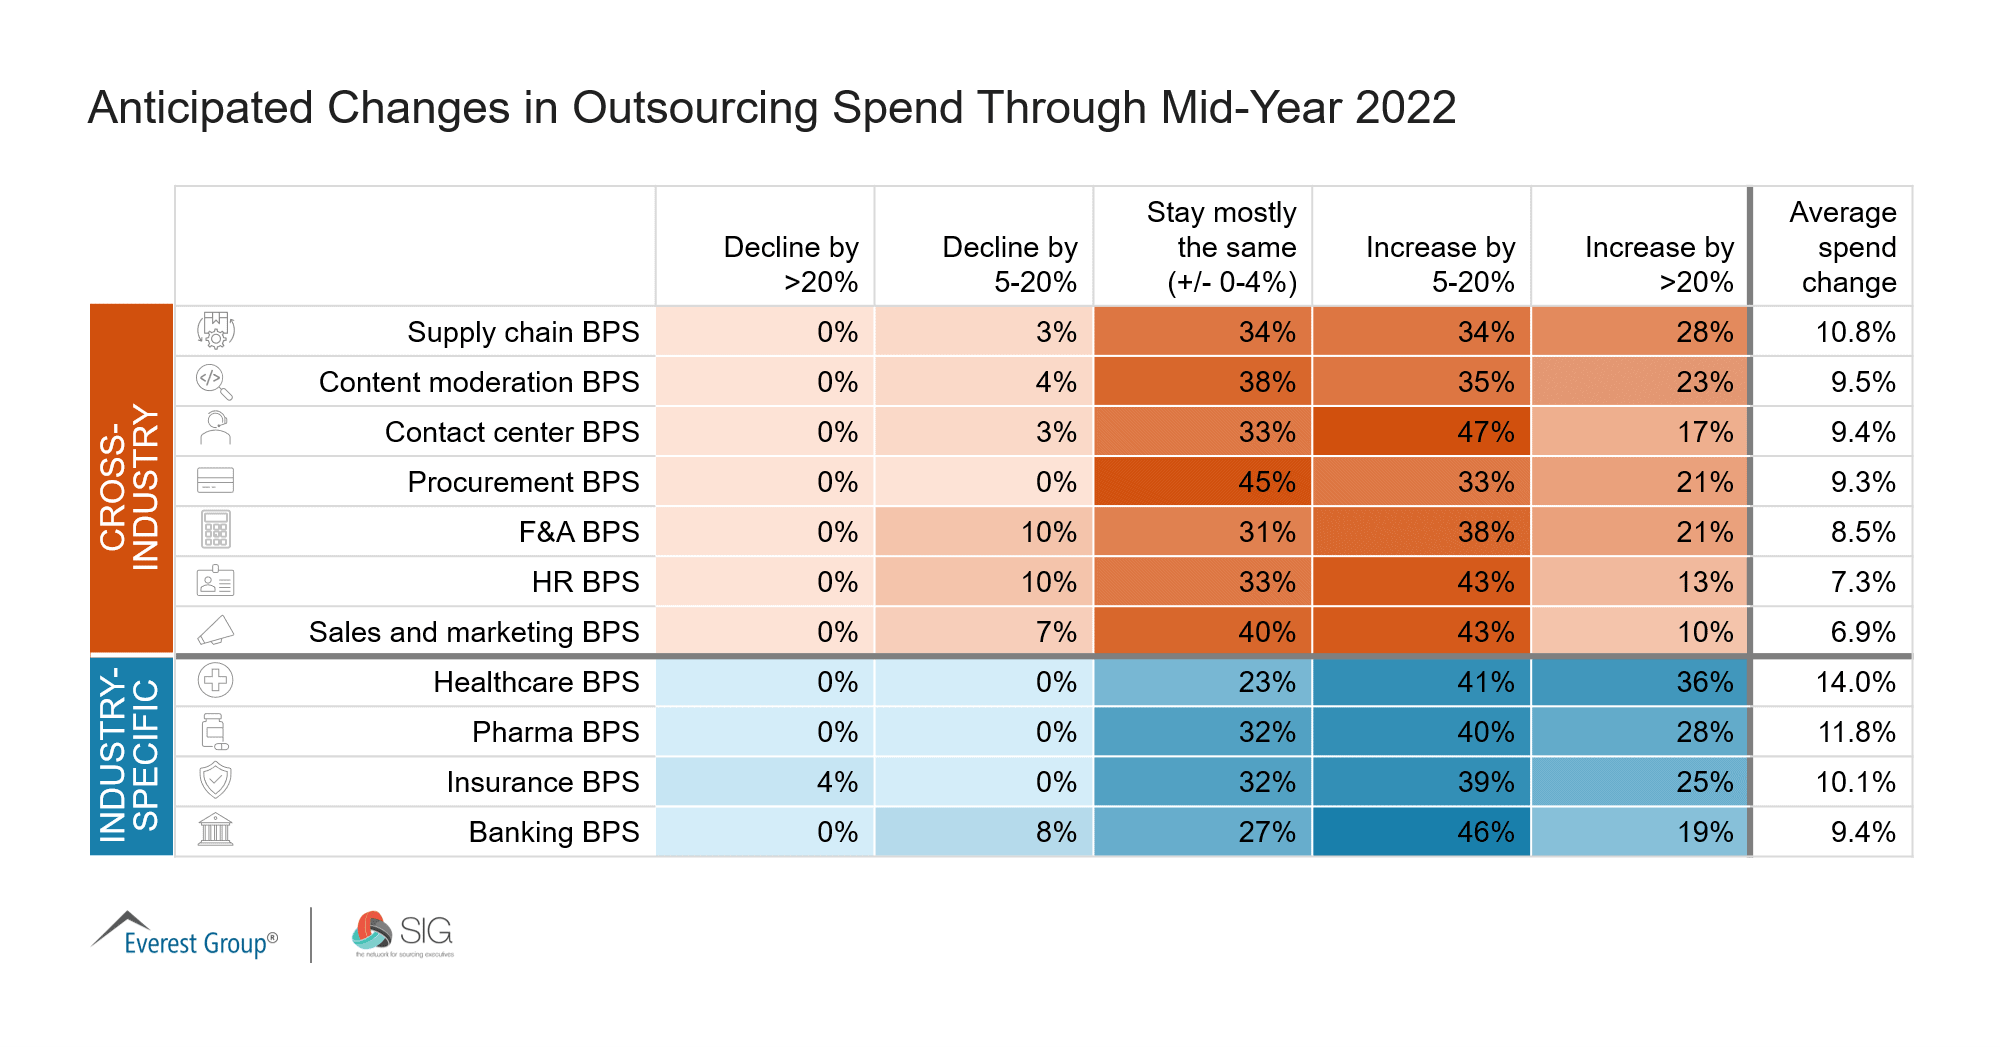 Q1 Anticipated Changes in Outsourcing Spend Through Mid-Year 2022